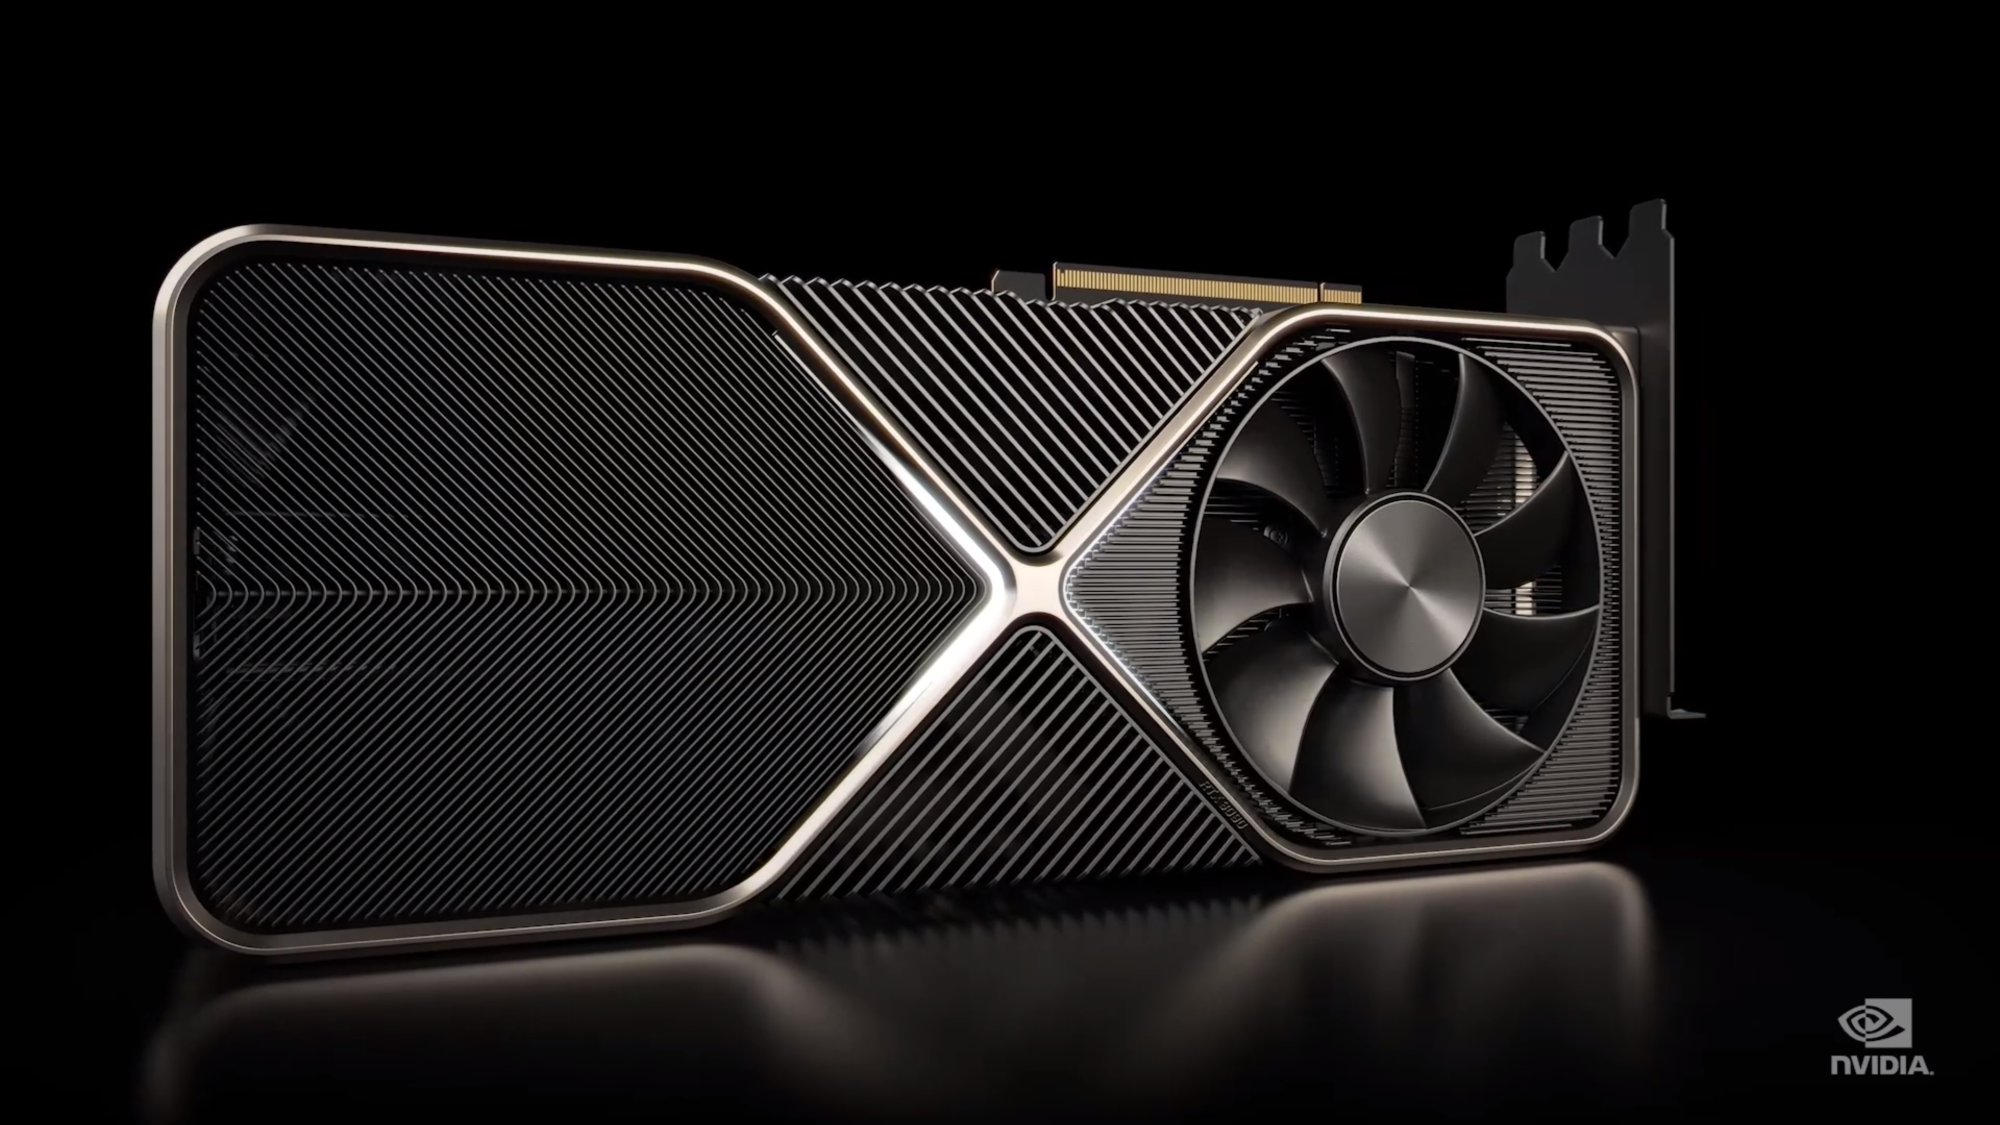 Geforce RTX 3090 RTX 3060 RTX 3080 Ti